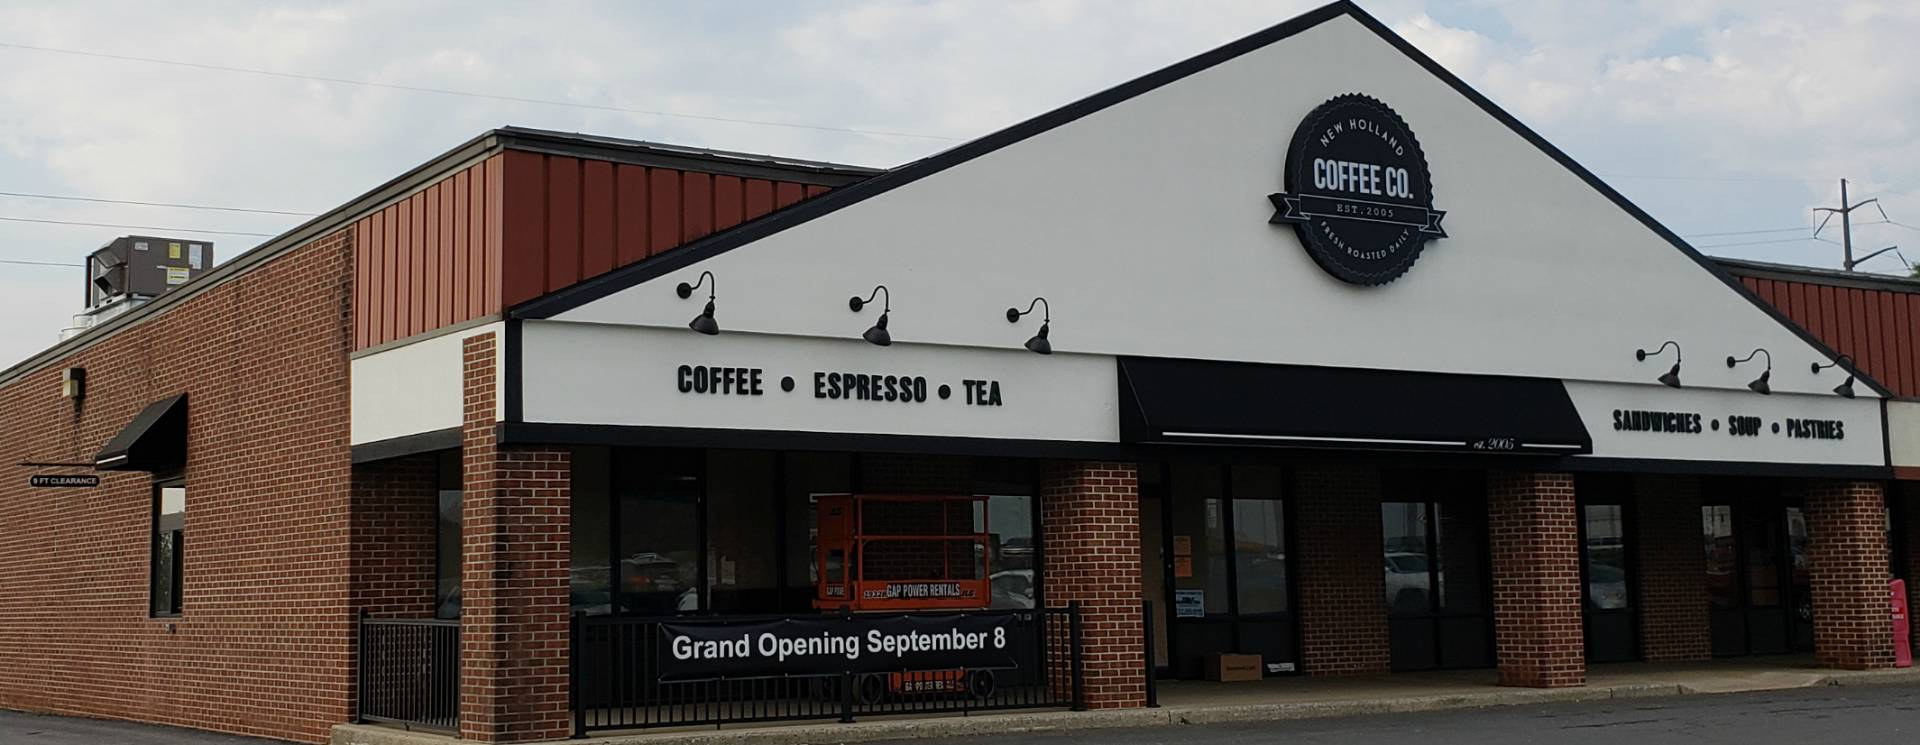 New Holland Coffee Company Storefront Awning Kreider S